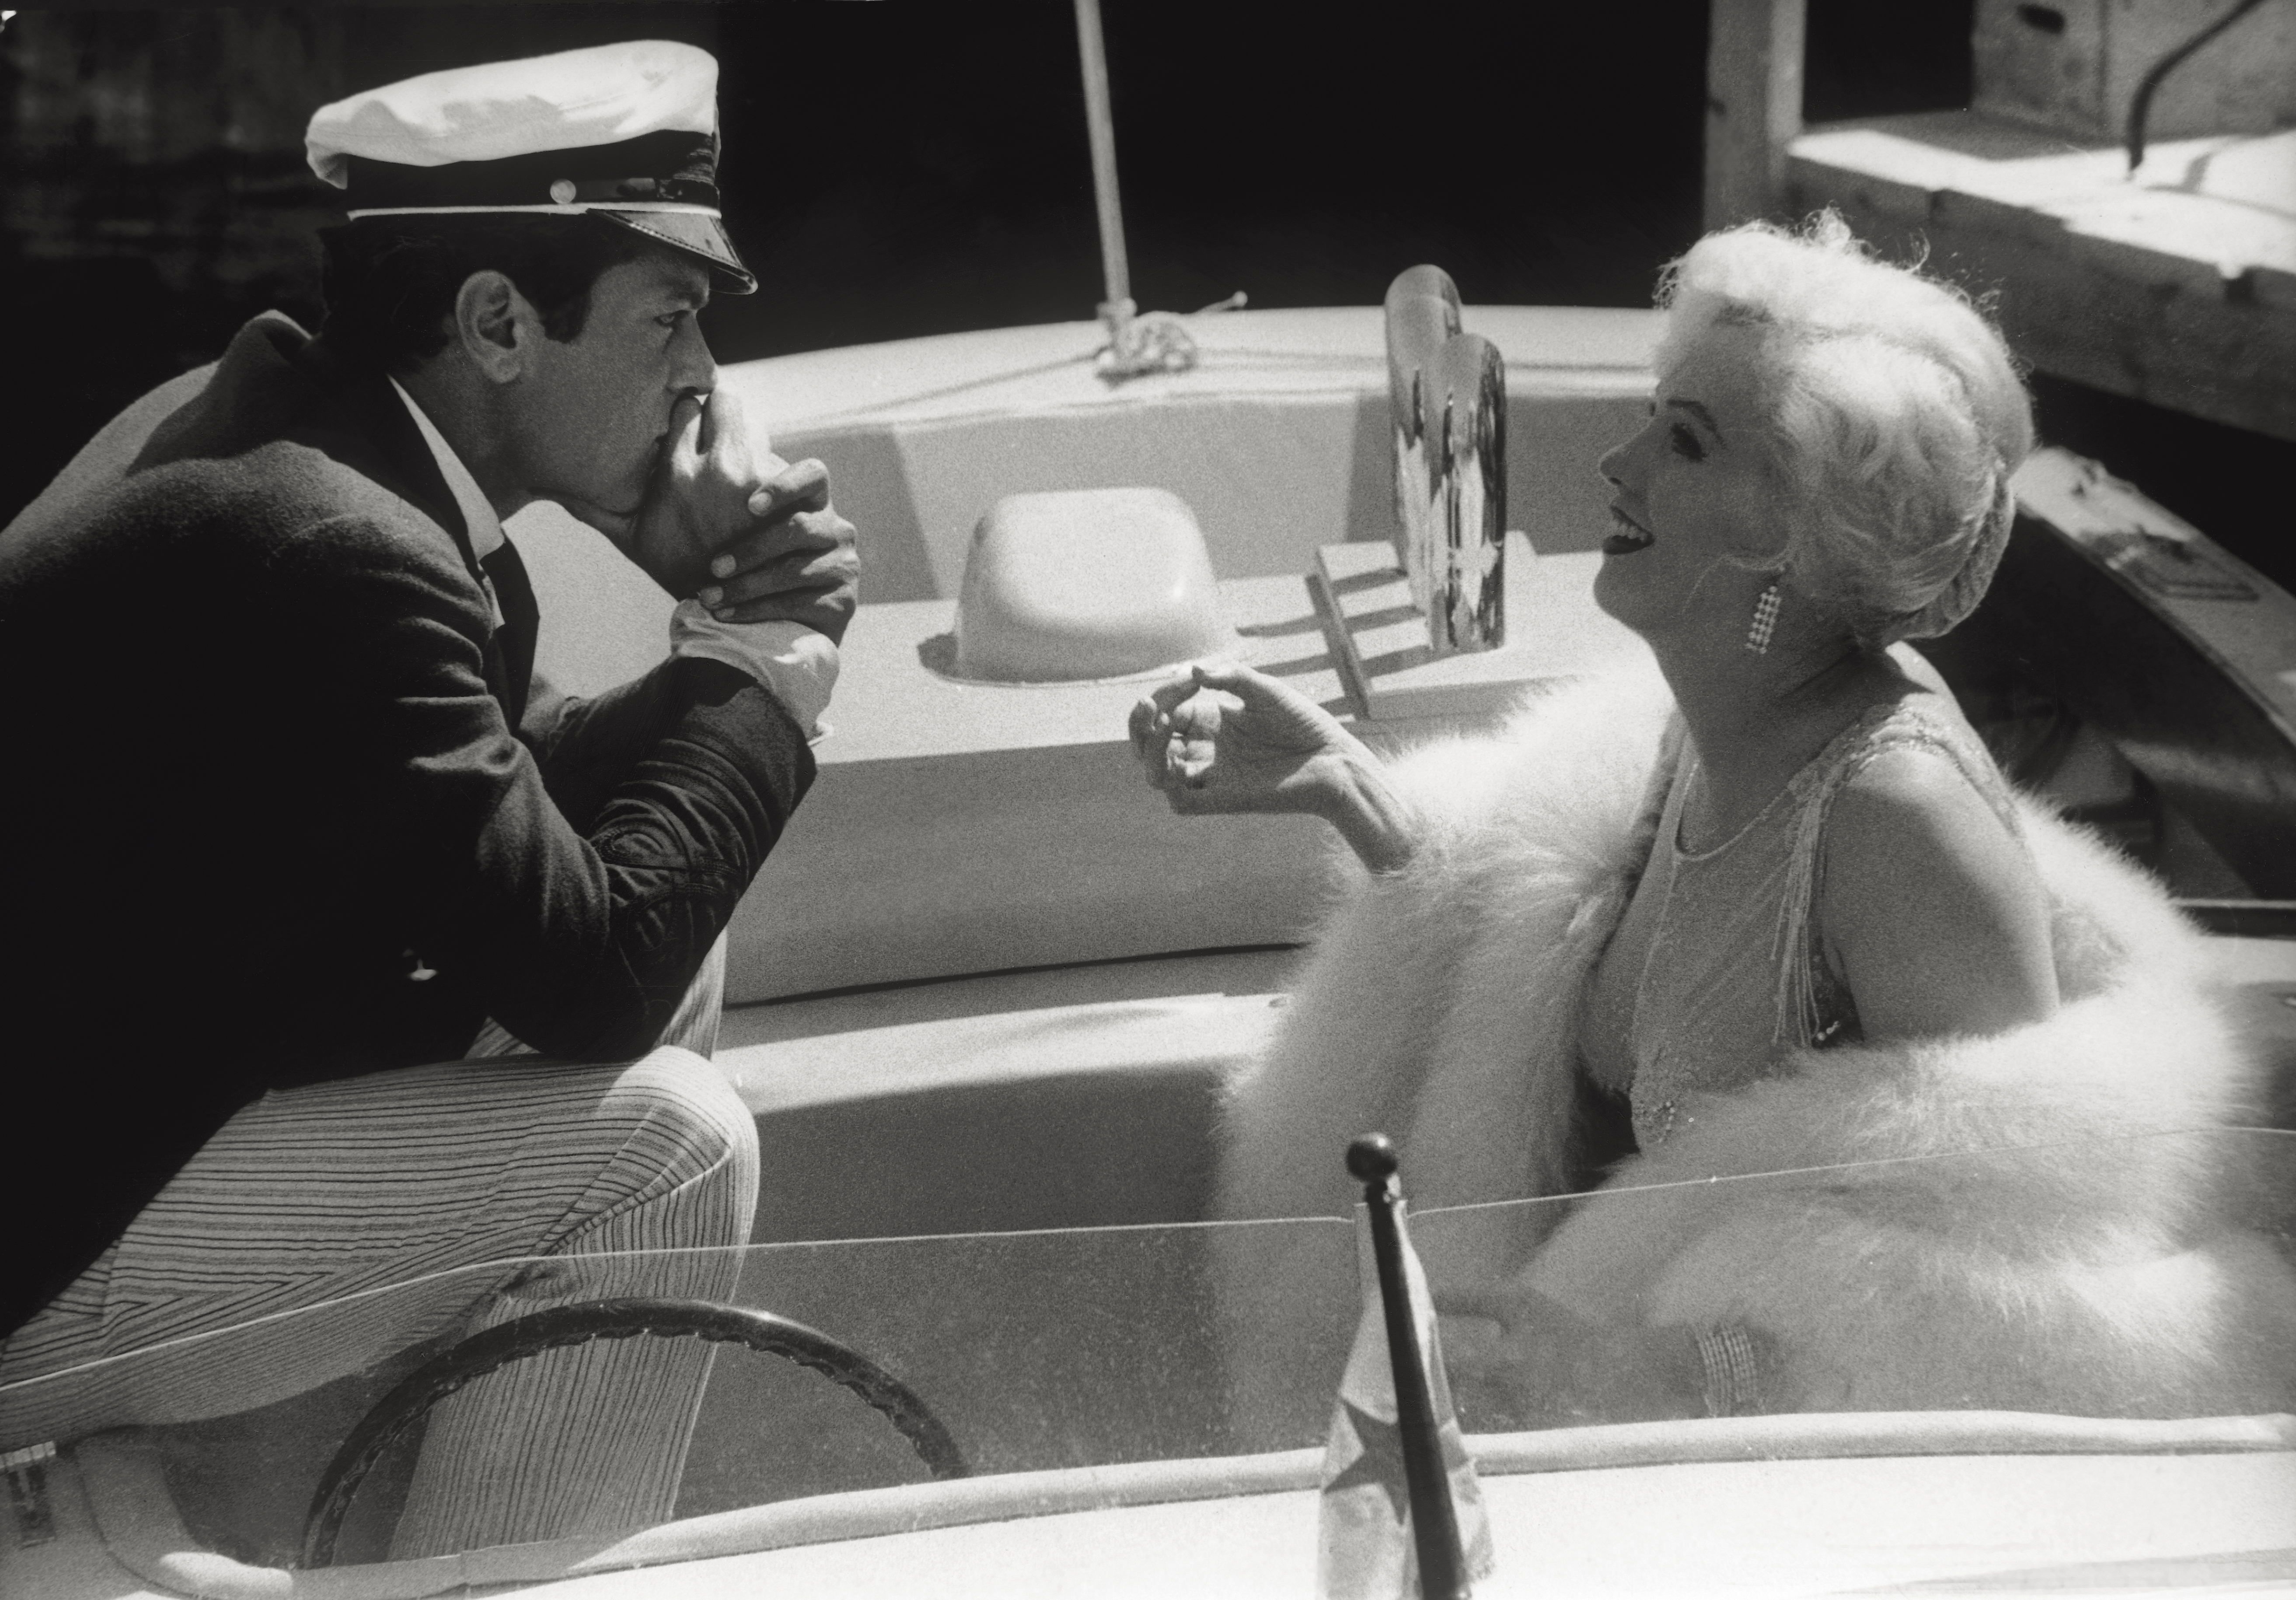 Tony Curtis And Marilyn Monroe In 'Some Like It Hot'.